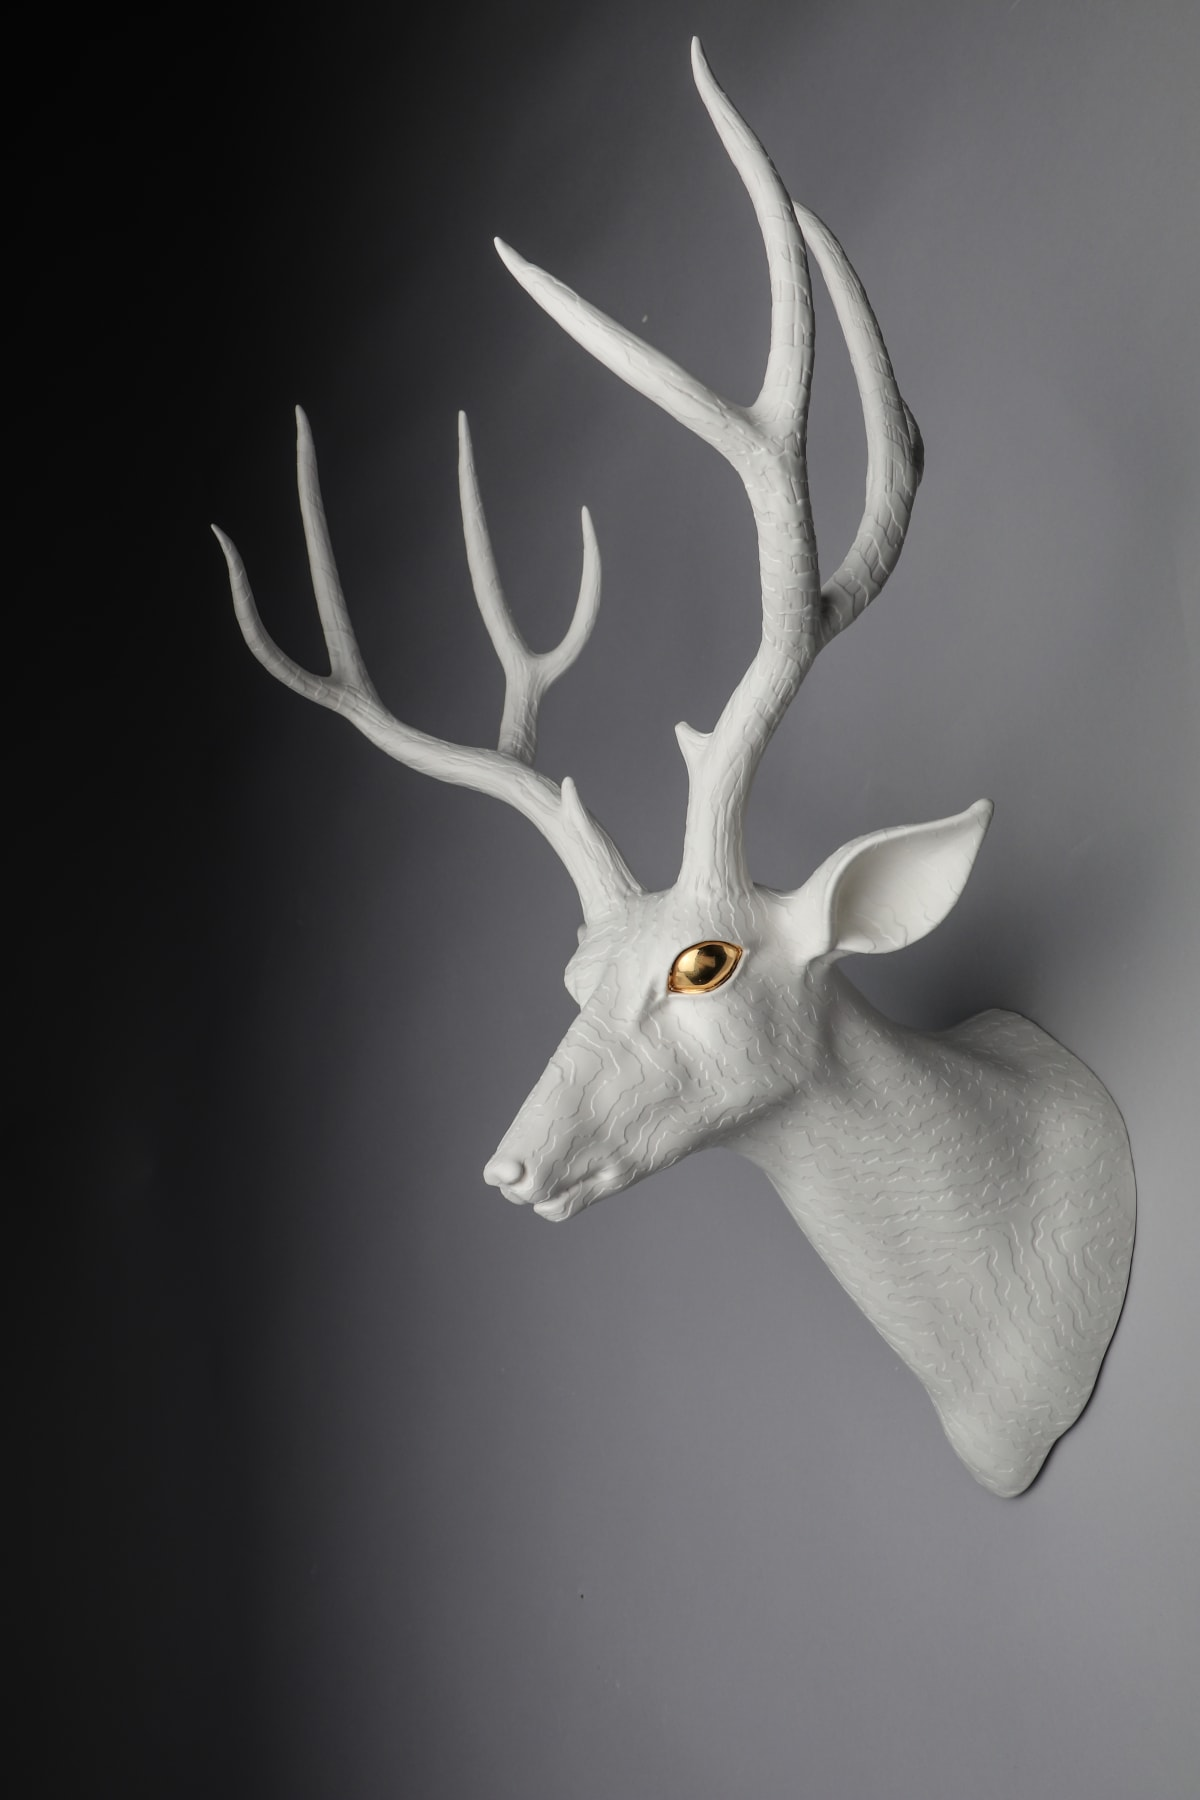 Sculptures By Maeng Highlight The Invisibility Of Animal World